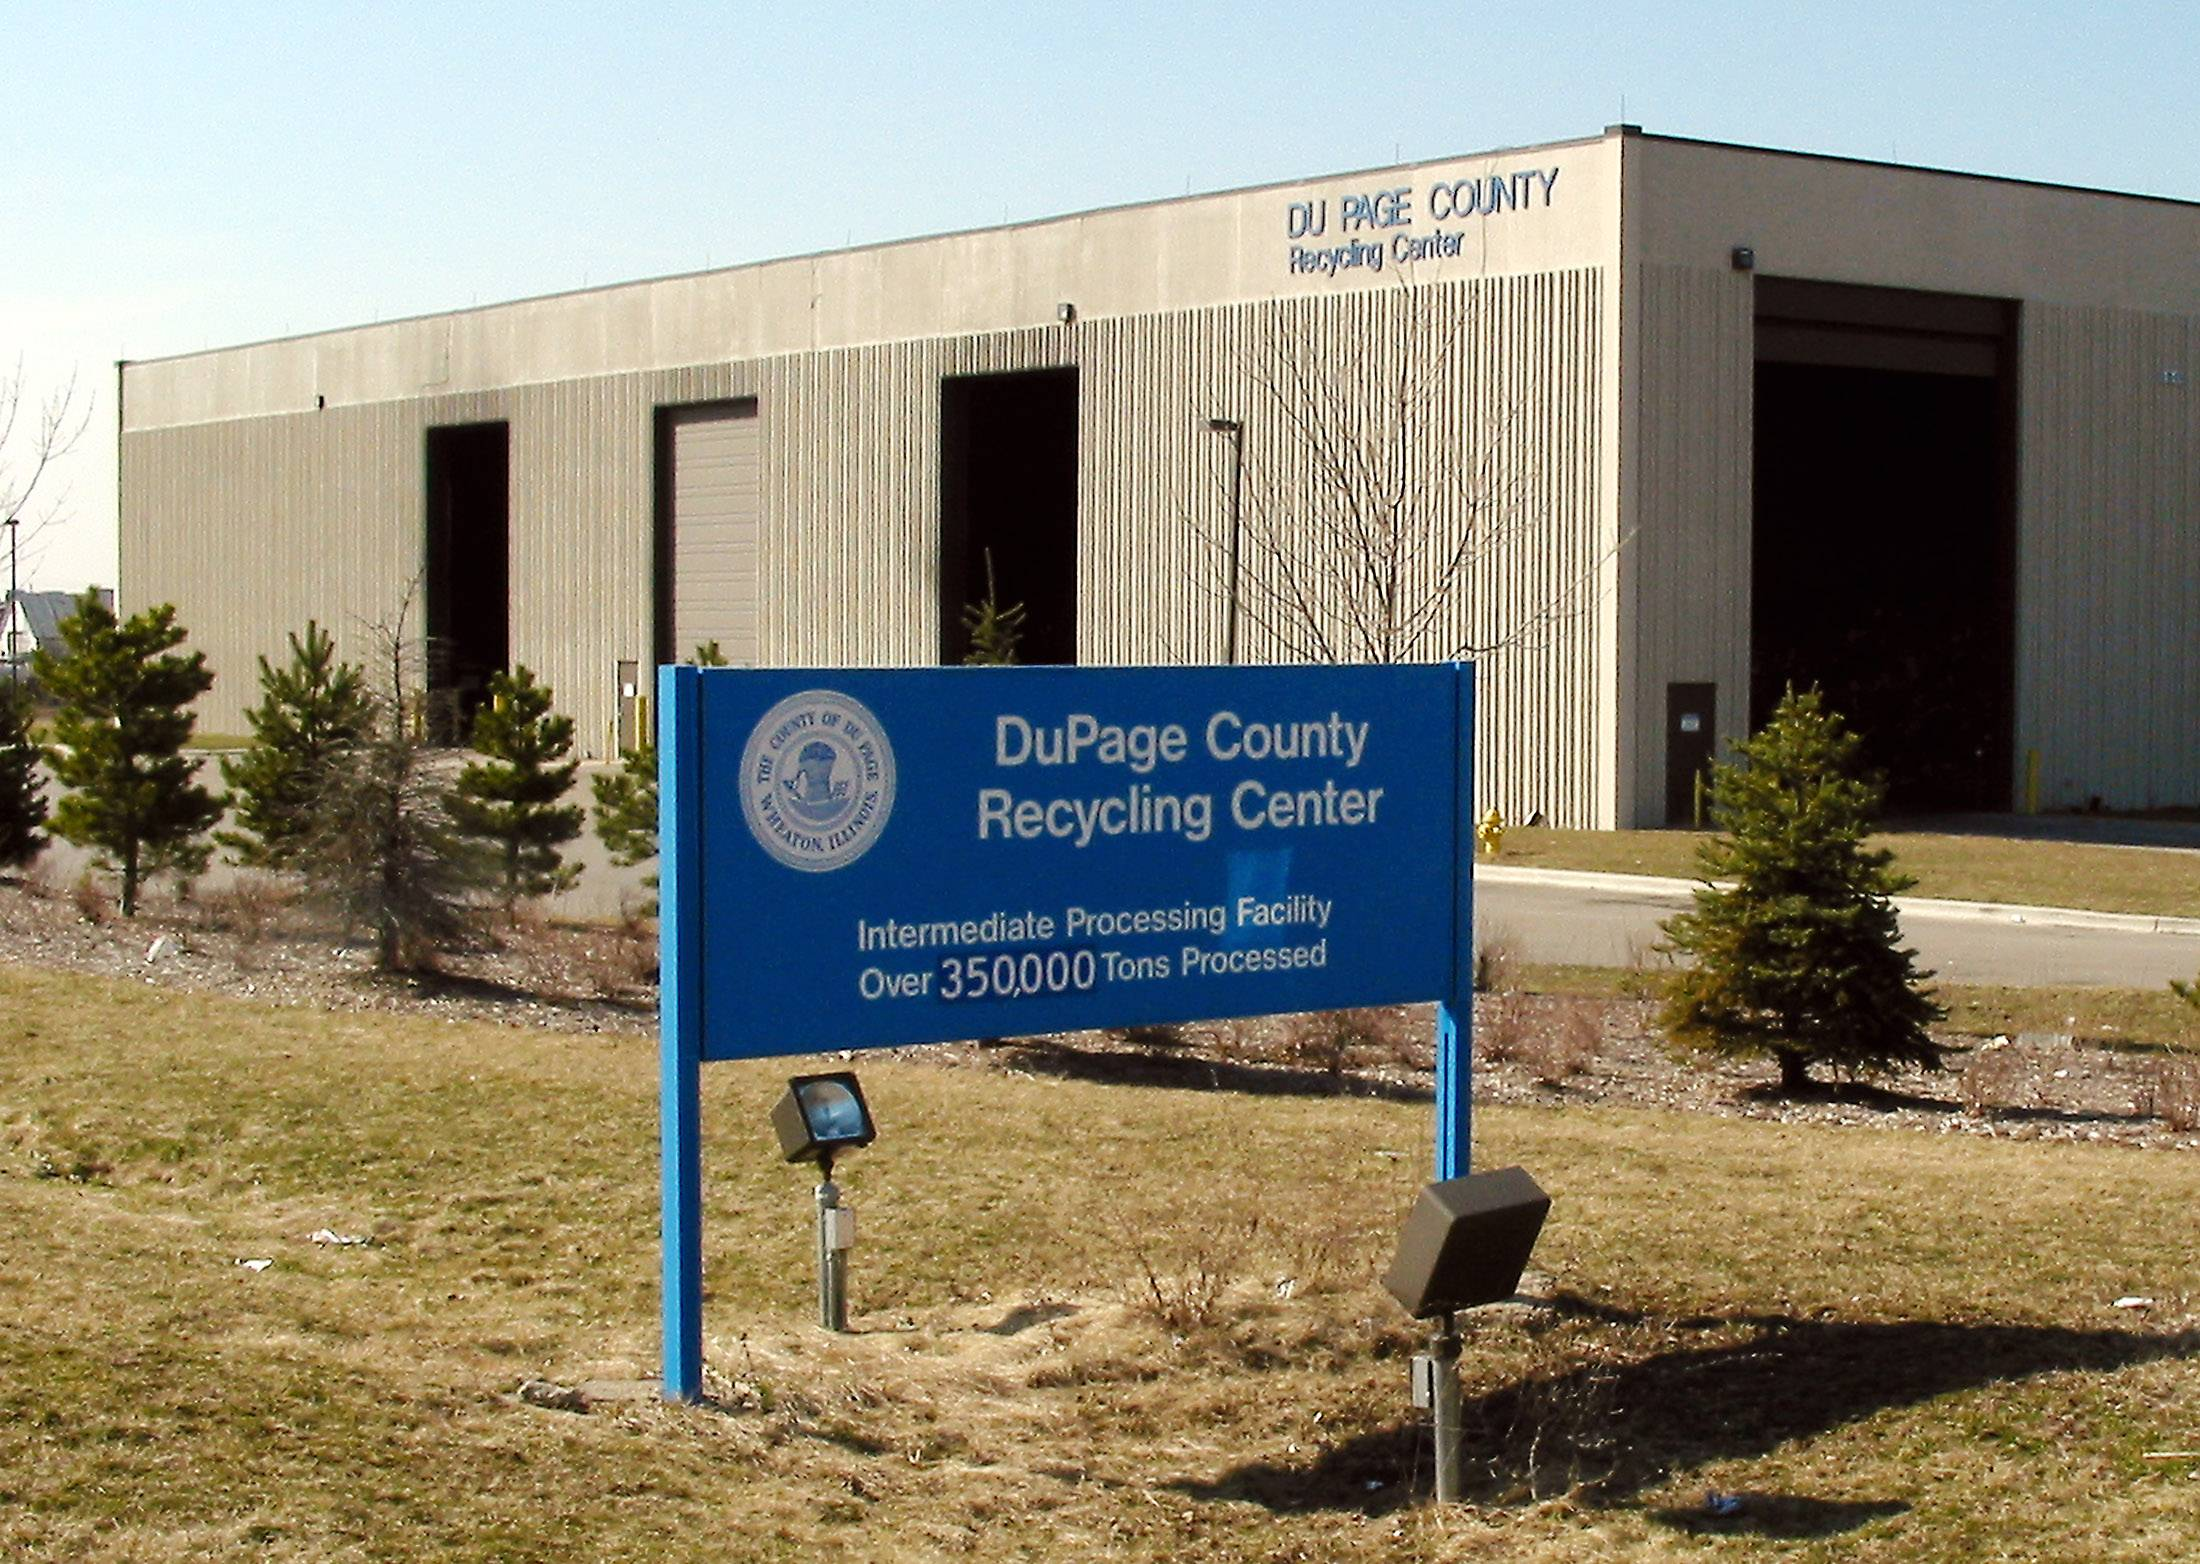 The DuPage County Recycling Center closed last month after more than 25 years of operation in Carol Stream.